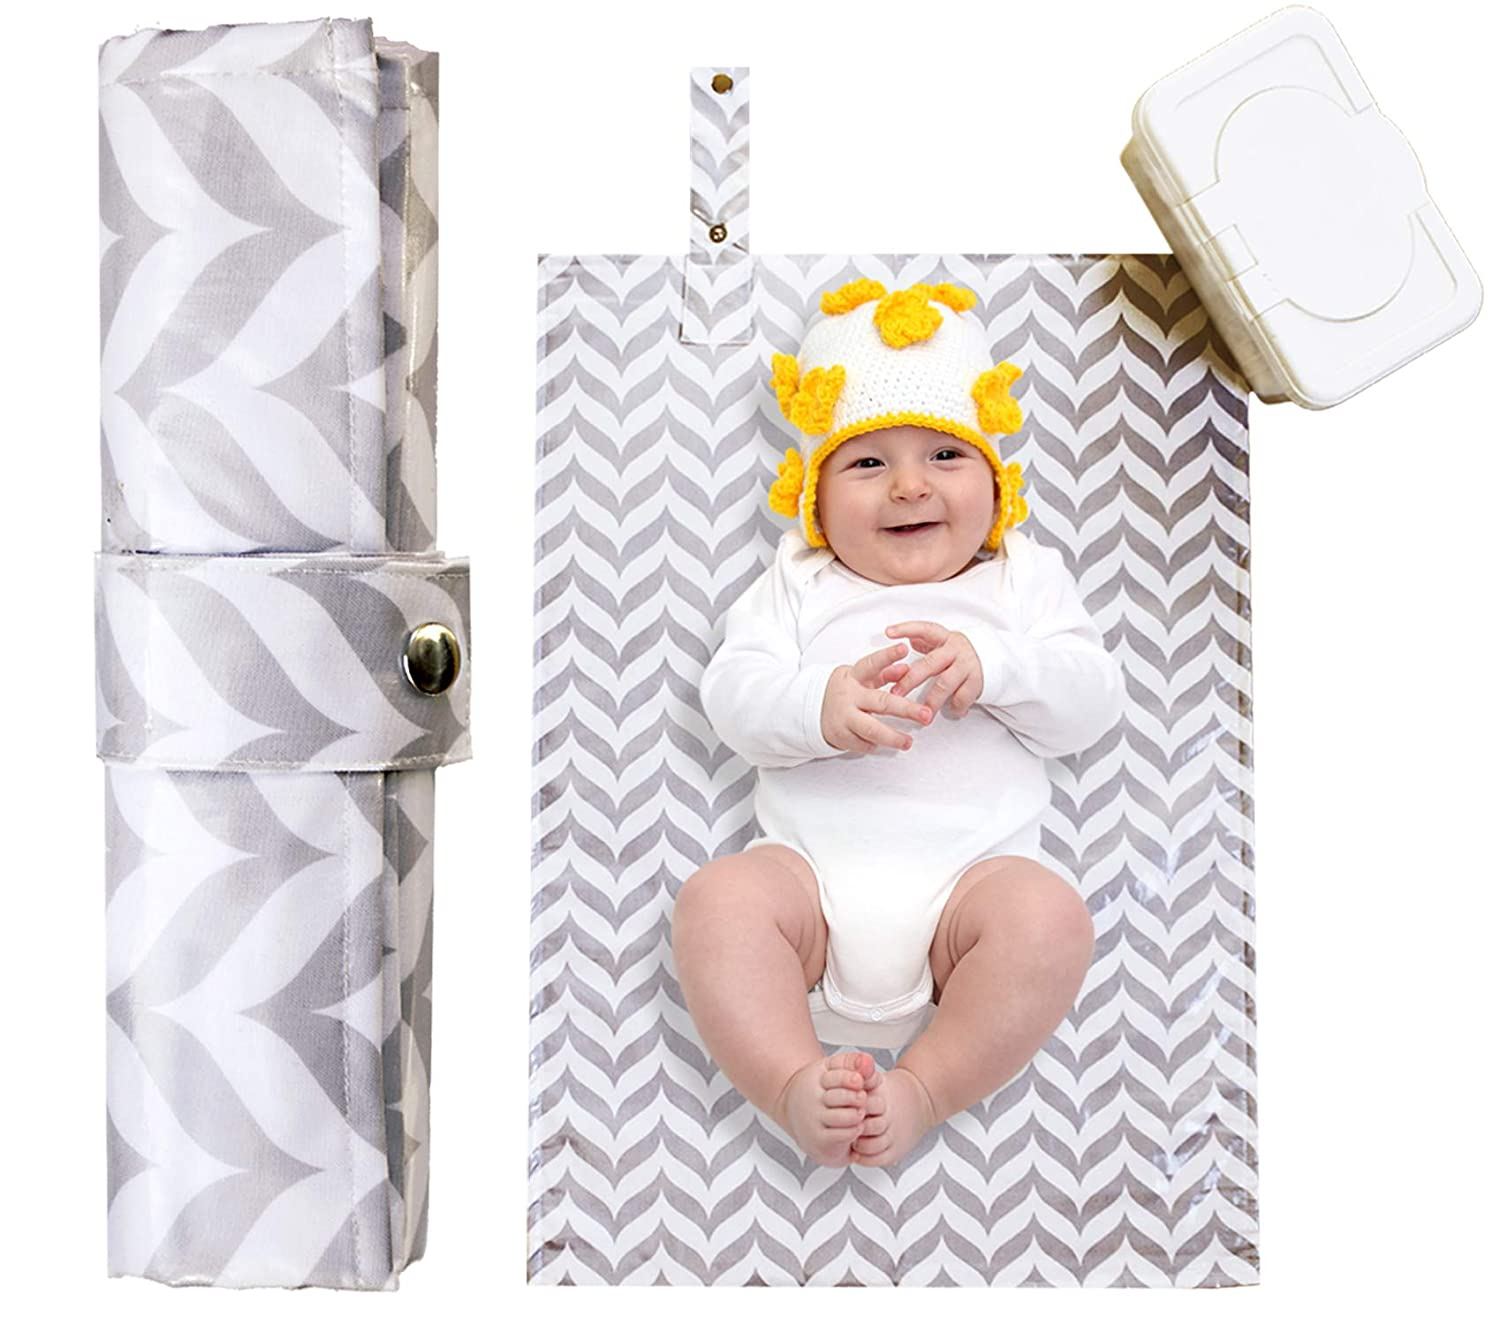 Portable Diaper Changing Pad - Waterproof, Wipeable, Washable -Compact Travel Mat for Infants and Toddlers, Large, Cushioned Quilted Padding - Grey Unisex Boy Girl